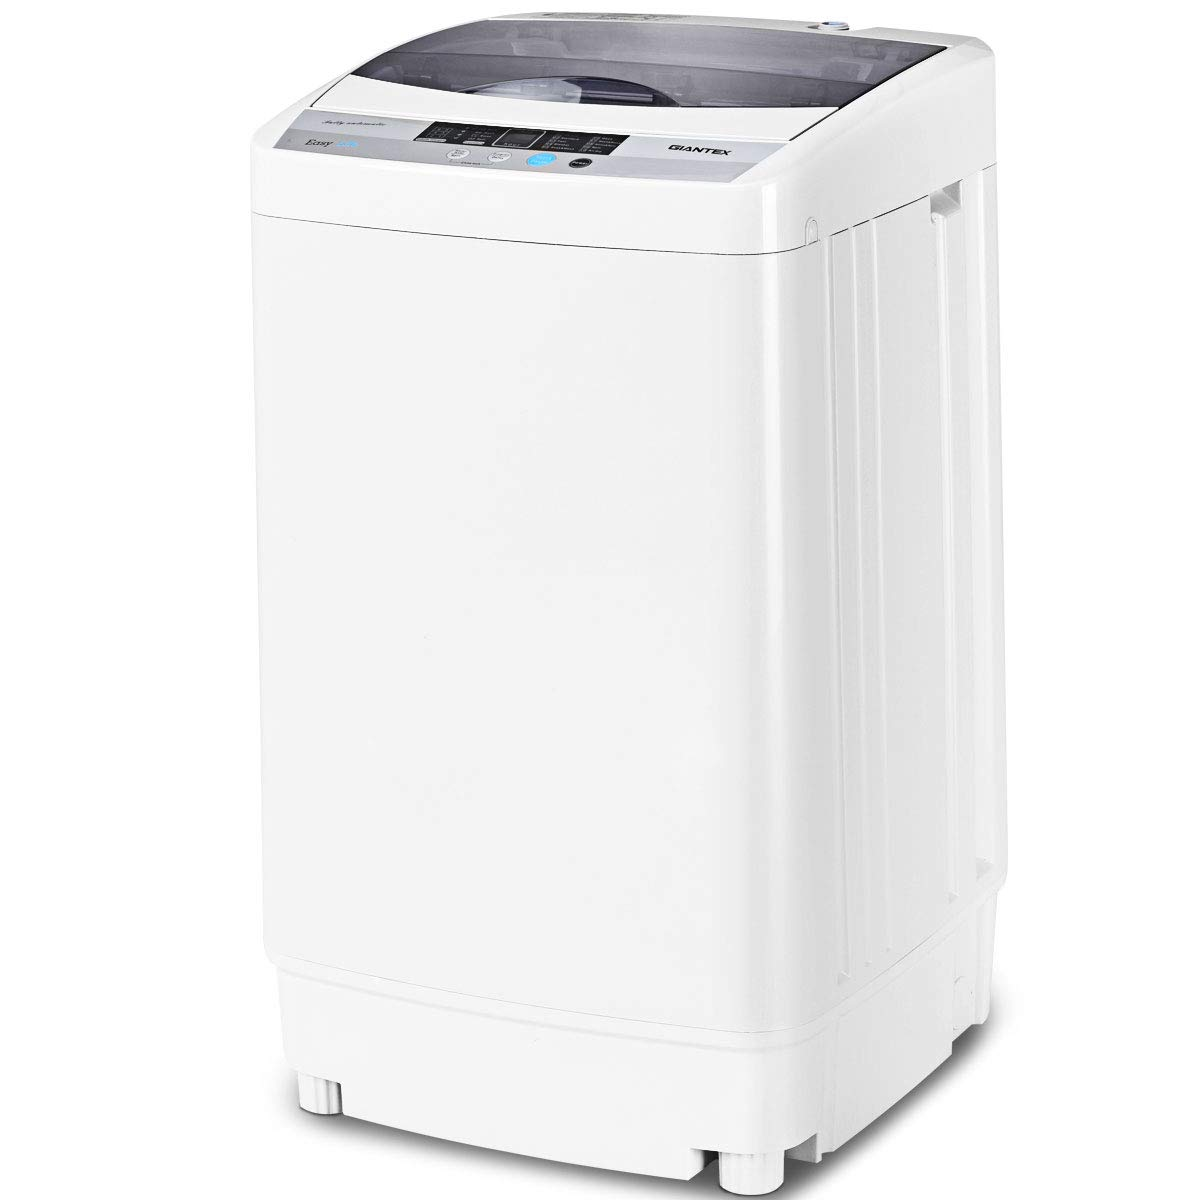 Giantex Portable Compact Full-Automatic Washing Machine 1.6 Cu.ft Laundry Washer Spin with Drain Pump EP23113